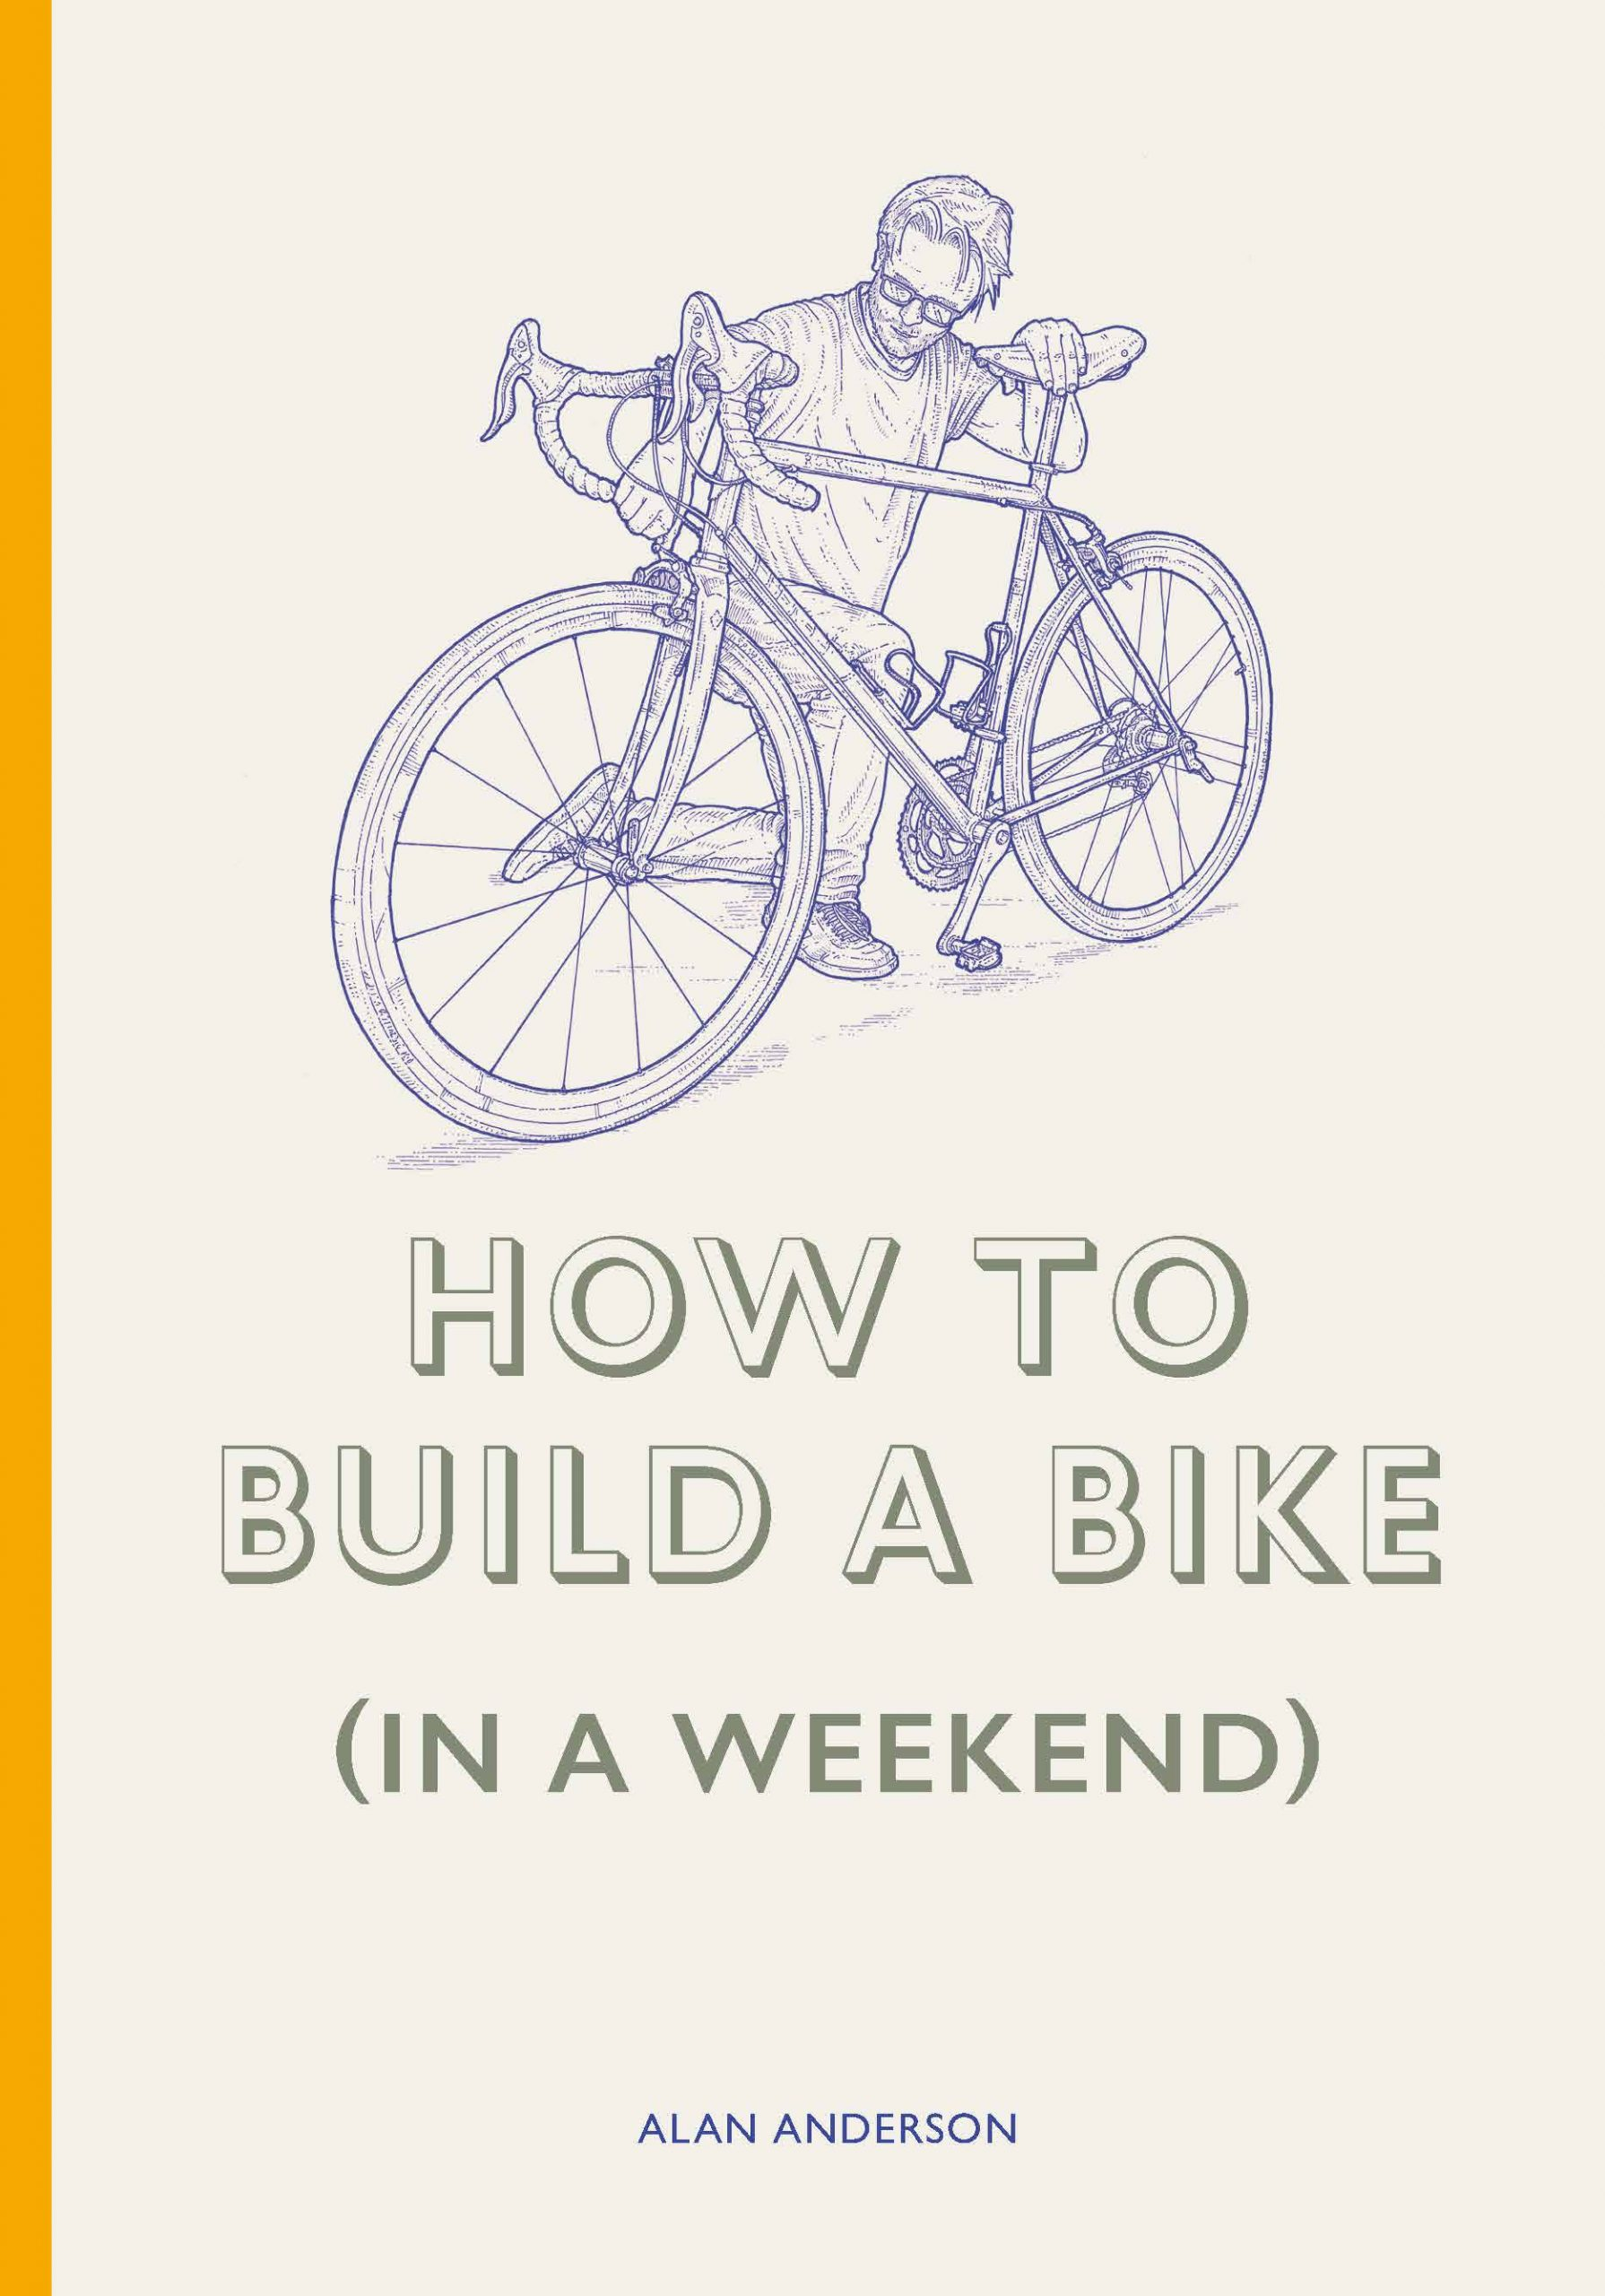 How to Build a Bike (in a Weekend) - Product Thumbnail